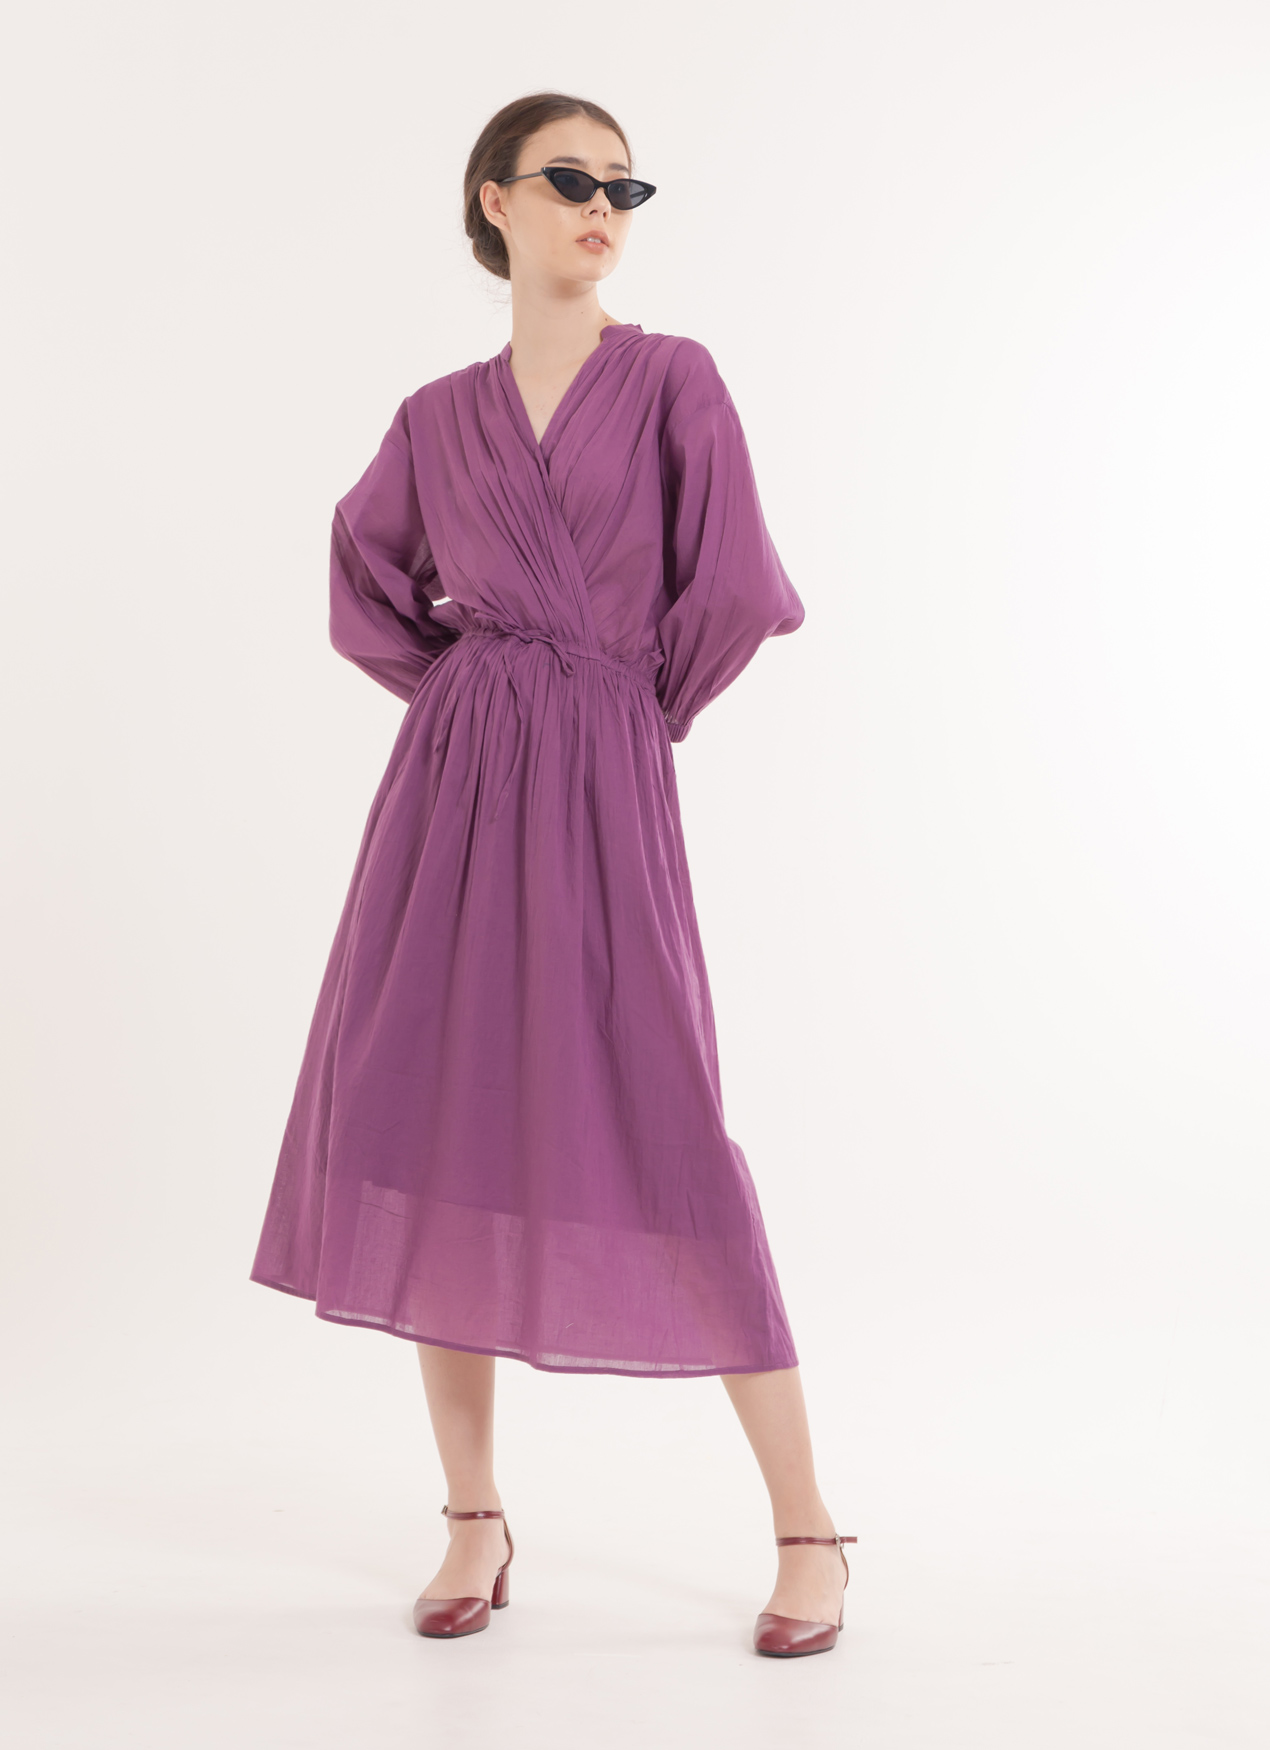 Sevendays Sunday Keira Dress - Purple